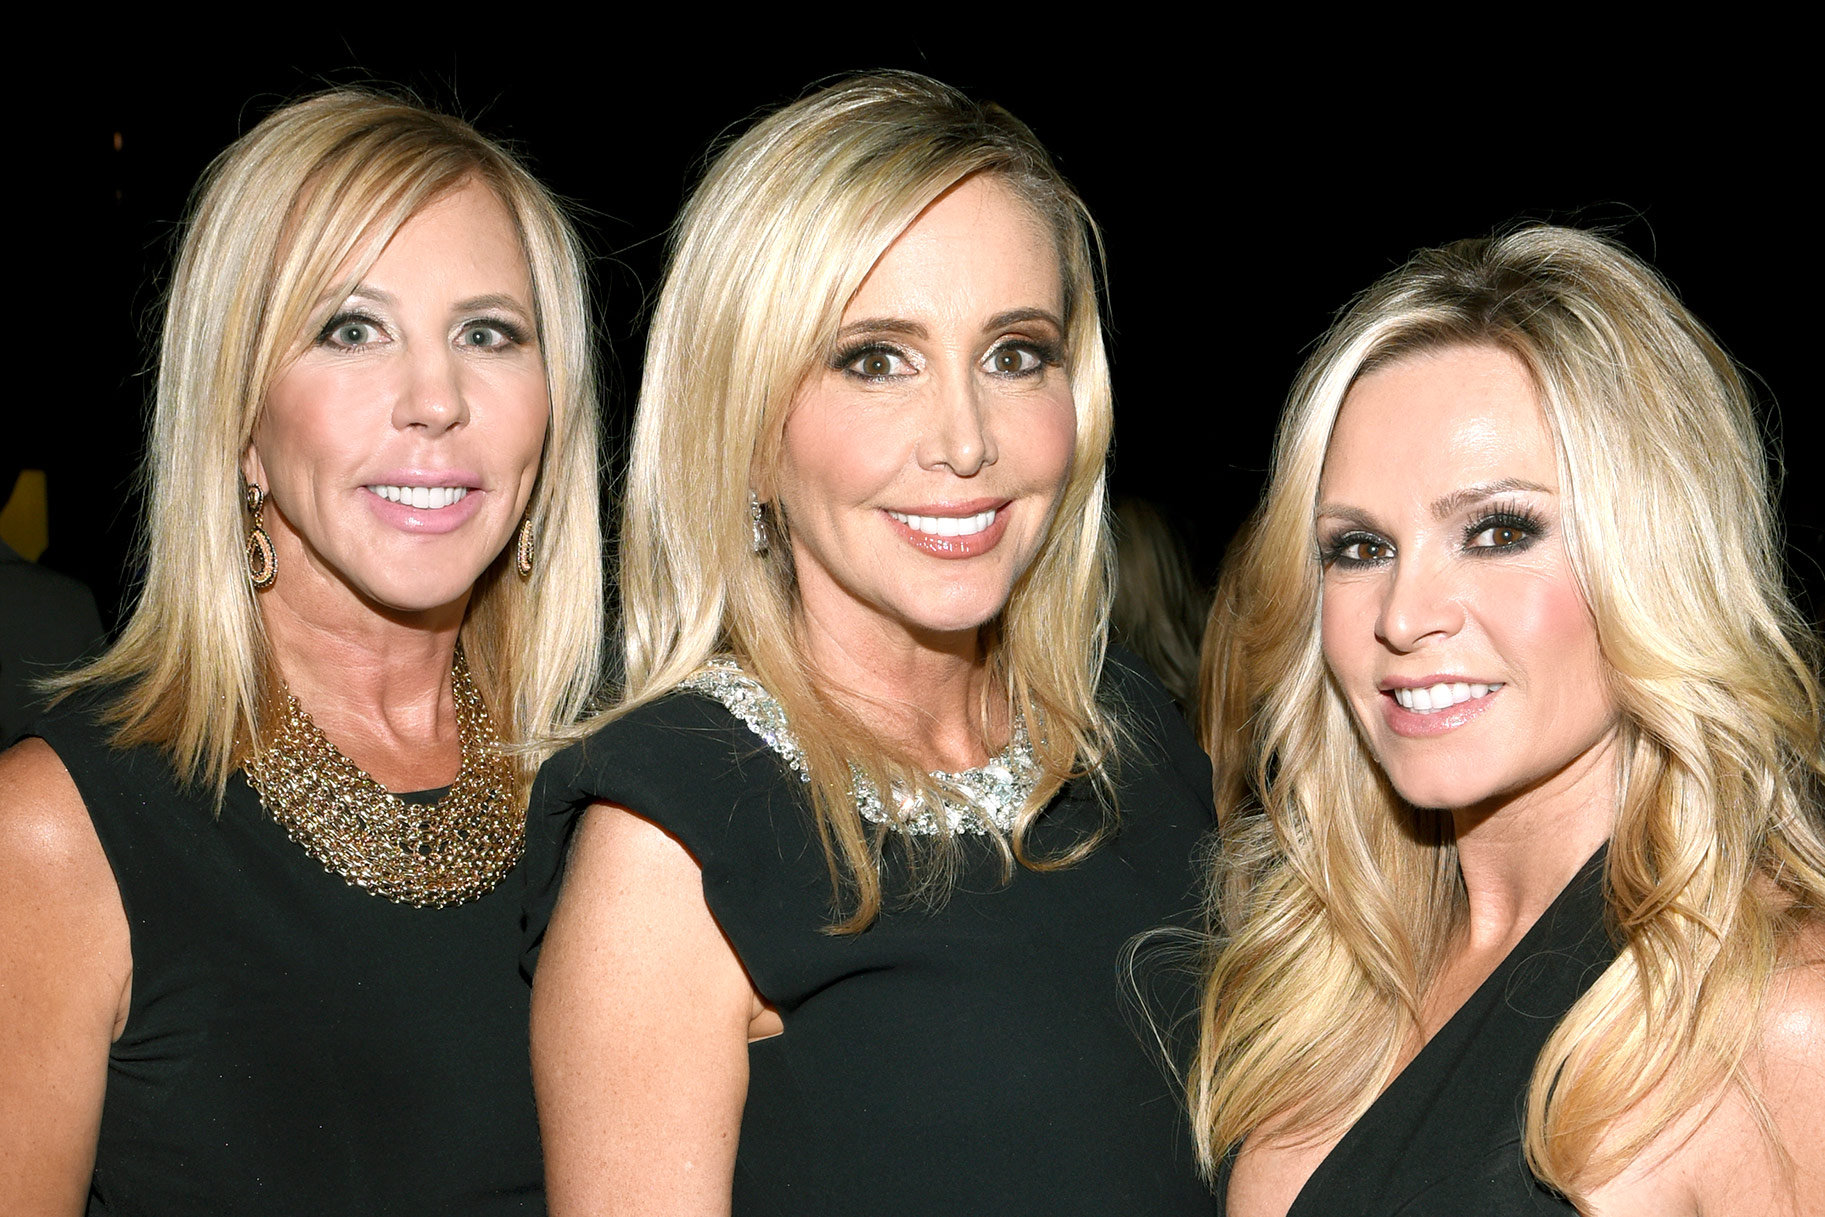 Vicki Gunvalson, Shannon Beador, and Tamra Judge